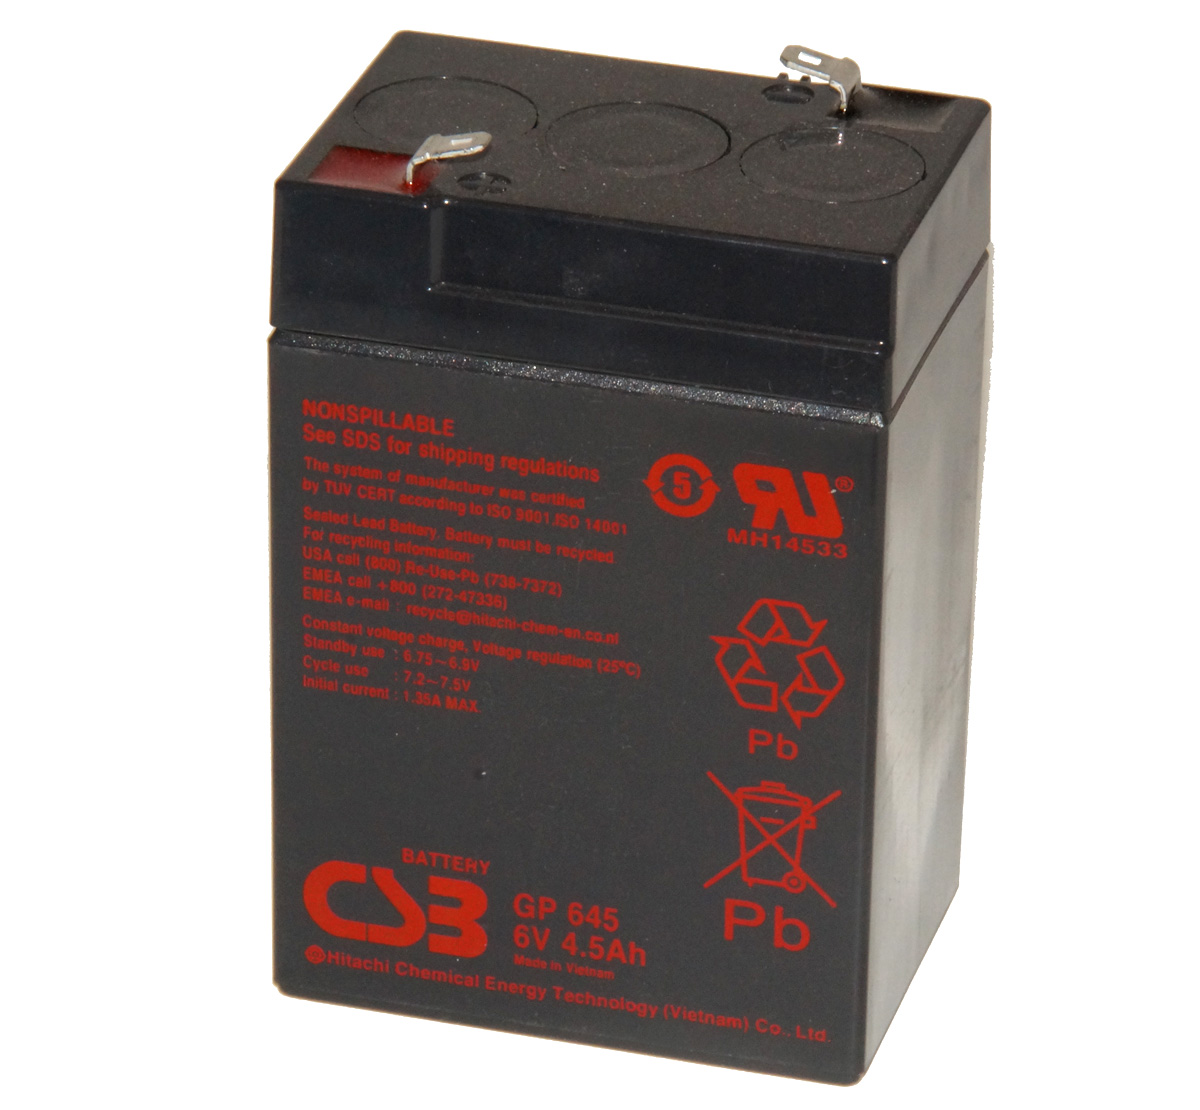 CSB GP645 F1 6V 4.5Ah Sealed Lead Acid Battery